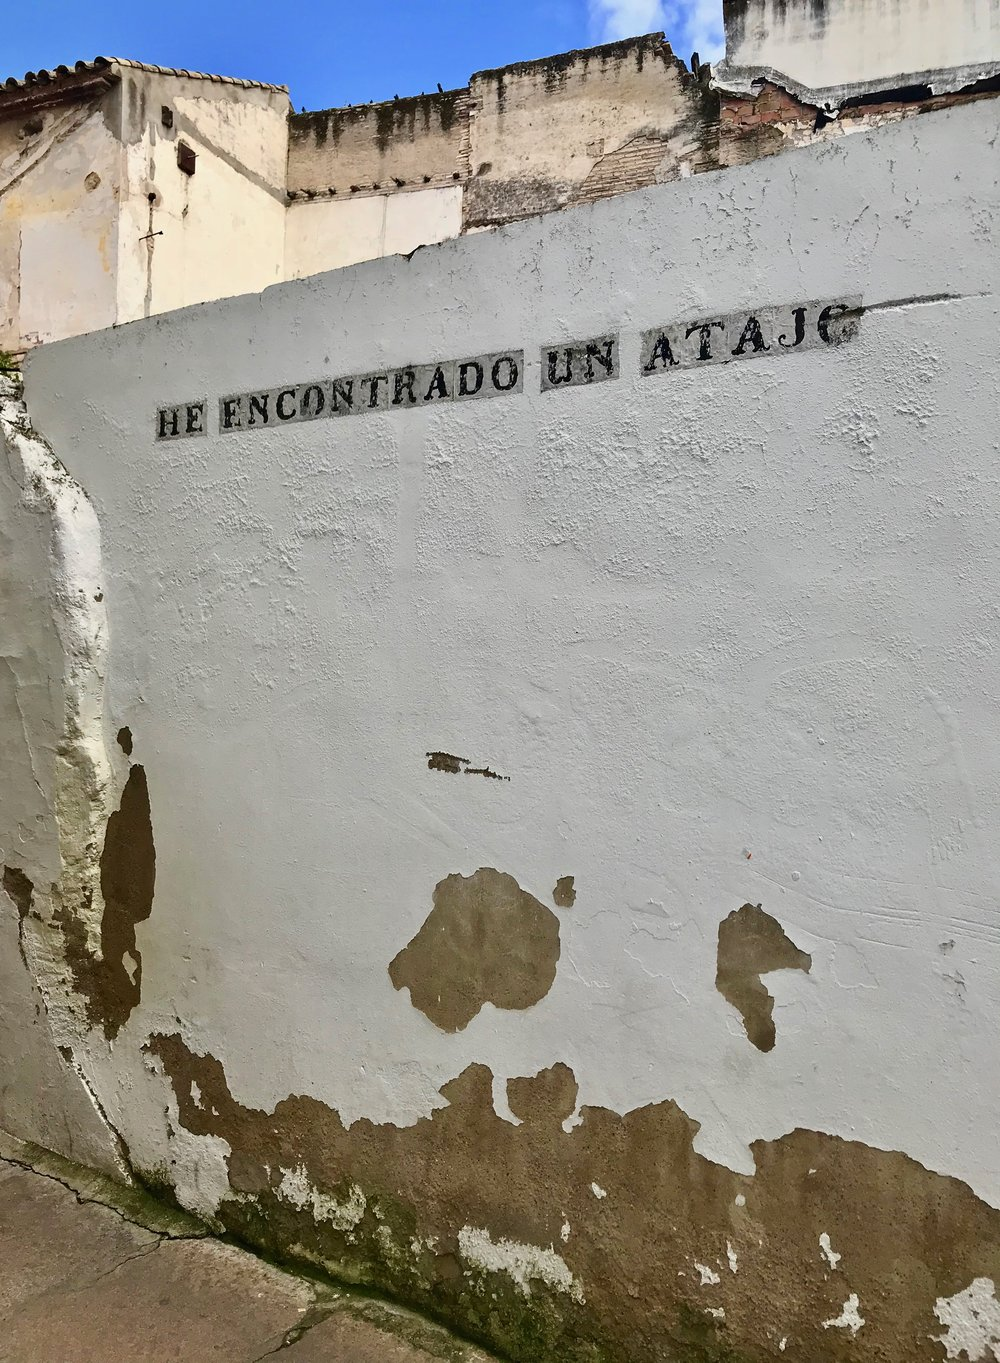 Part of the  Callejero Pirata , a collection of street art that imitates Córdoba's iconic street signs. Most of the installations, which were created in 2010, are gone now - but I still managed to find a few.